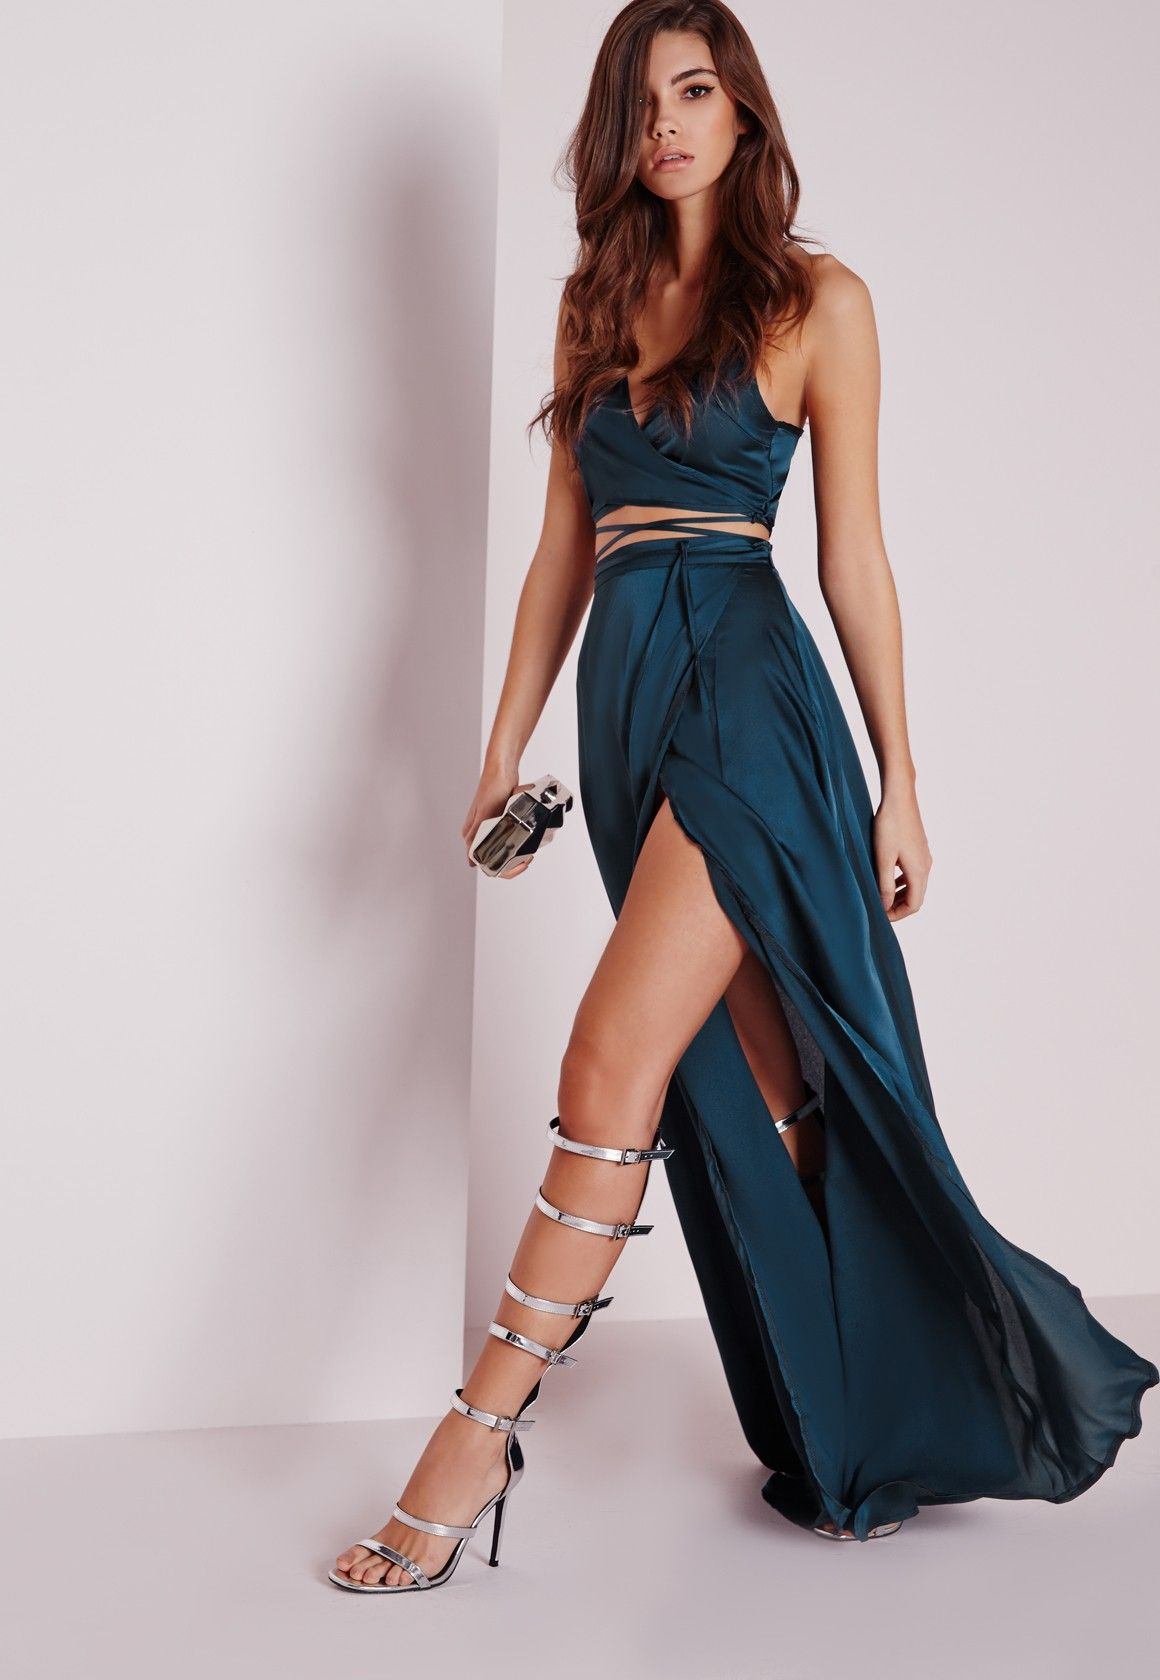 Tulle-Wrapped Teal Mini Dress